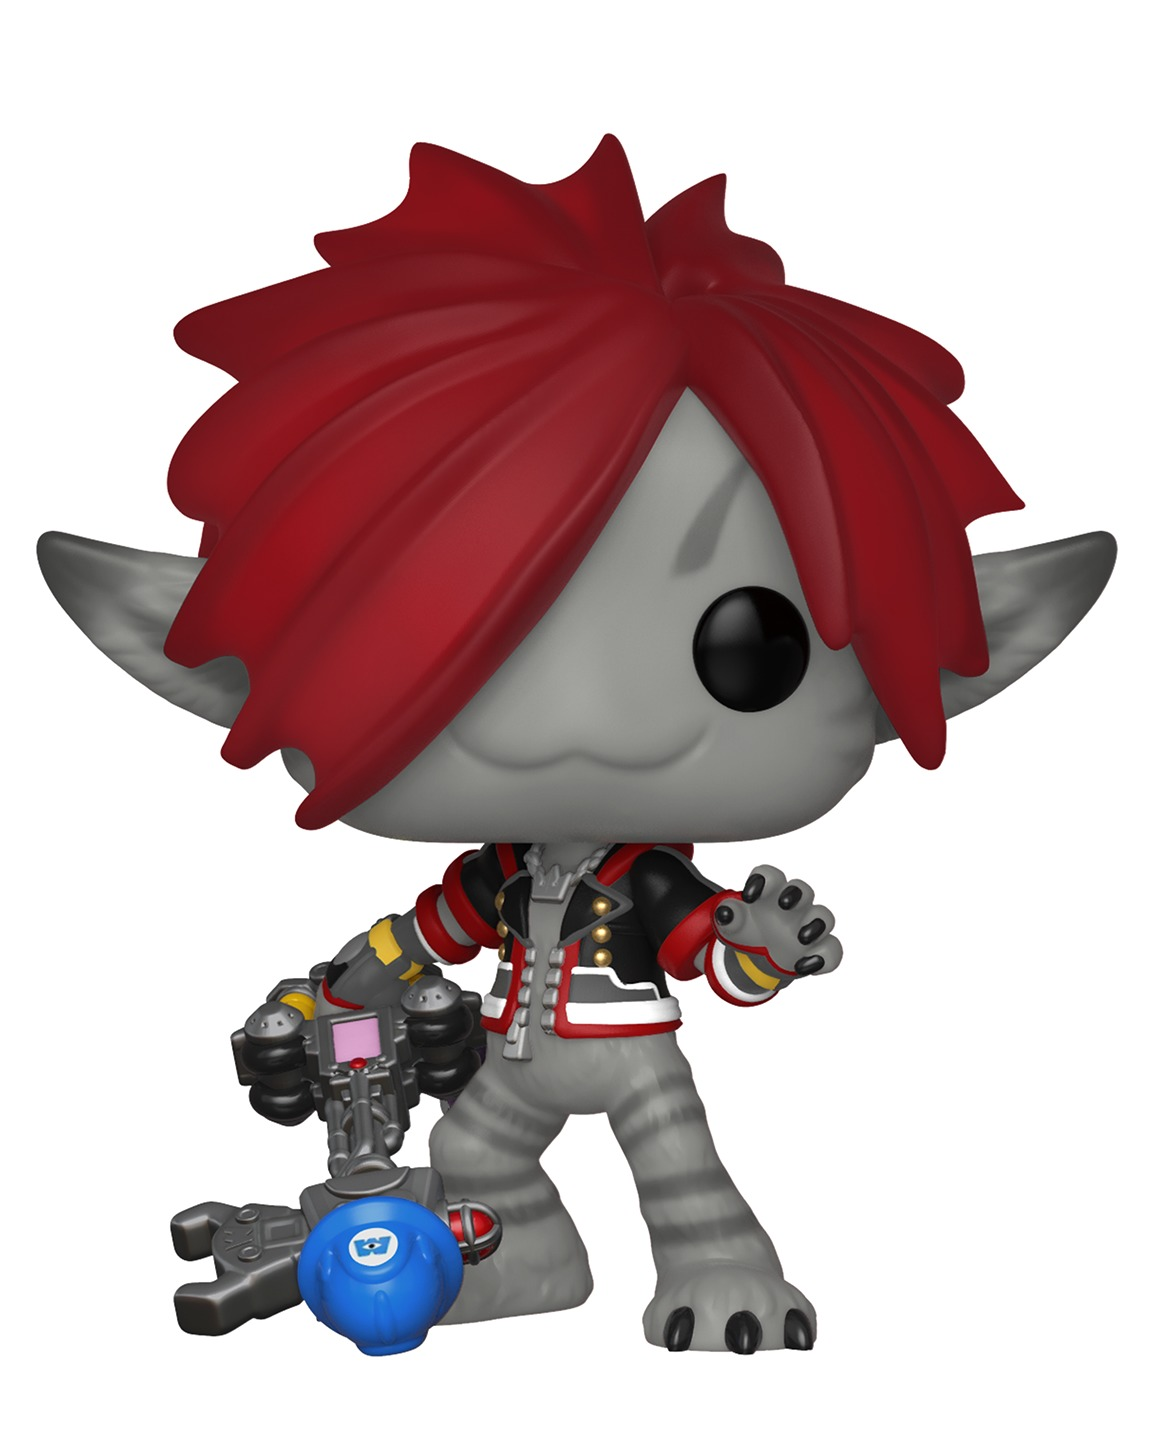 Kingdom Hearts III - Sora (Monster's Inc.) Pop! Vinyl Figure image